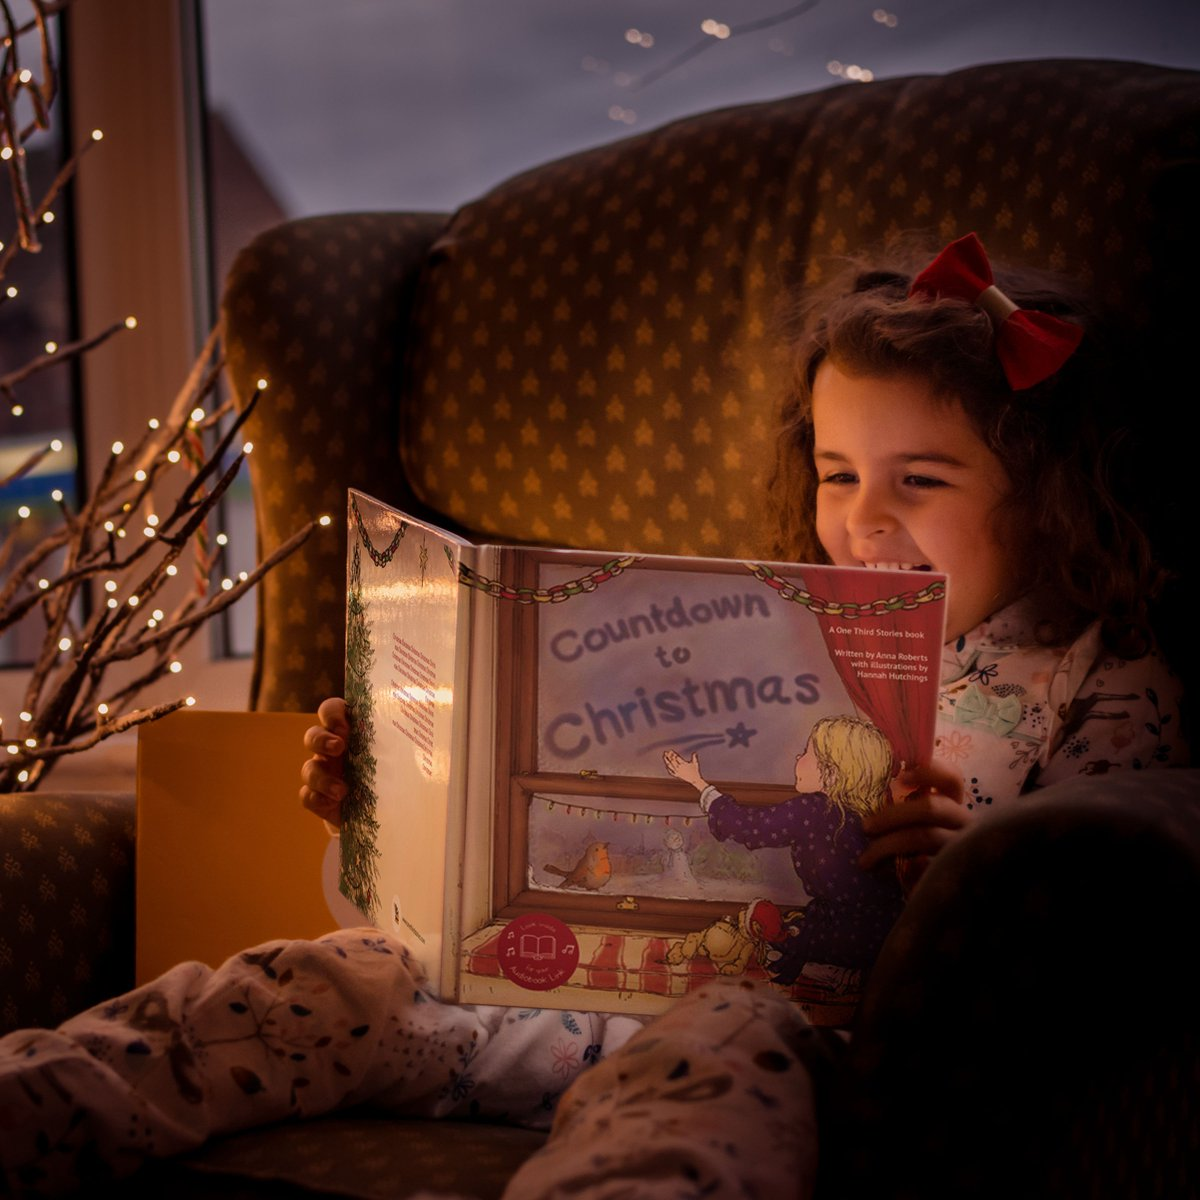 We wish we were snuggled up at home with a book this afternoon like Ivy! 🎄Our first ever OTS Christmas Story Box is now available for pre-order on the website: https://t.co/0JKtabKw5c https://t.co/0PnLEbHRG6